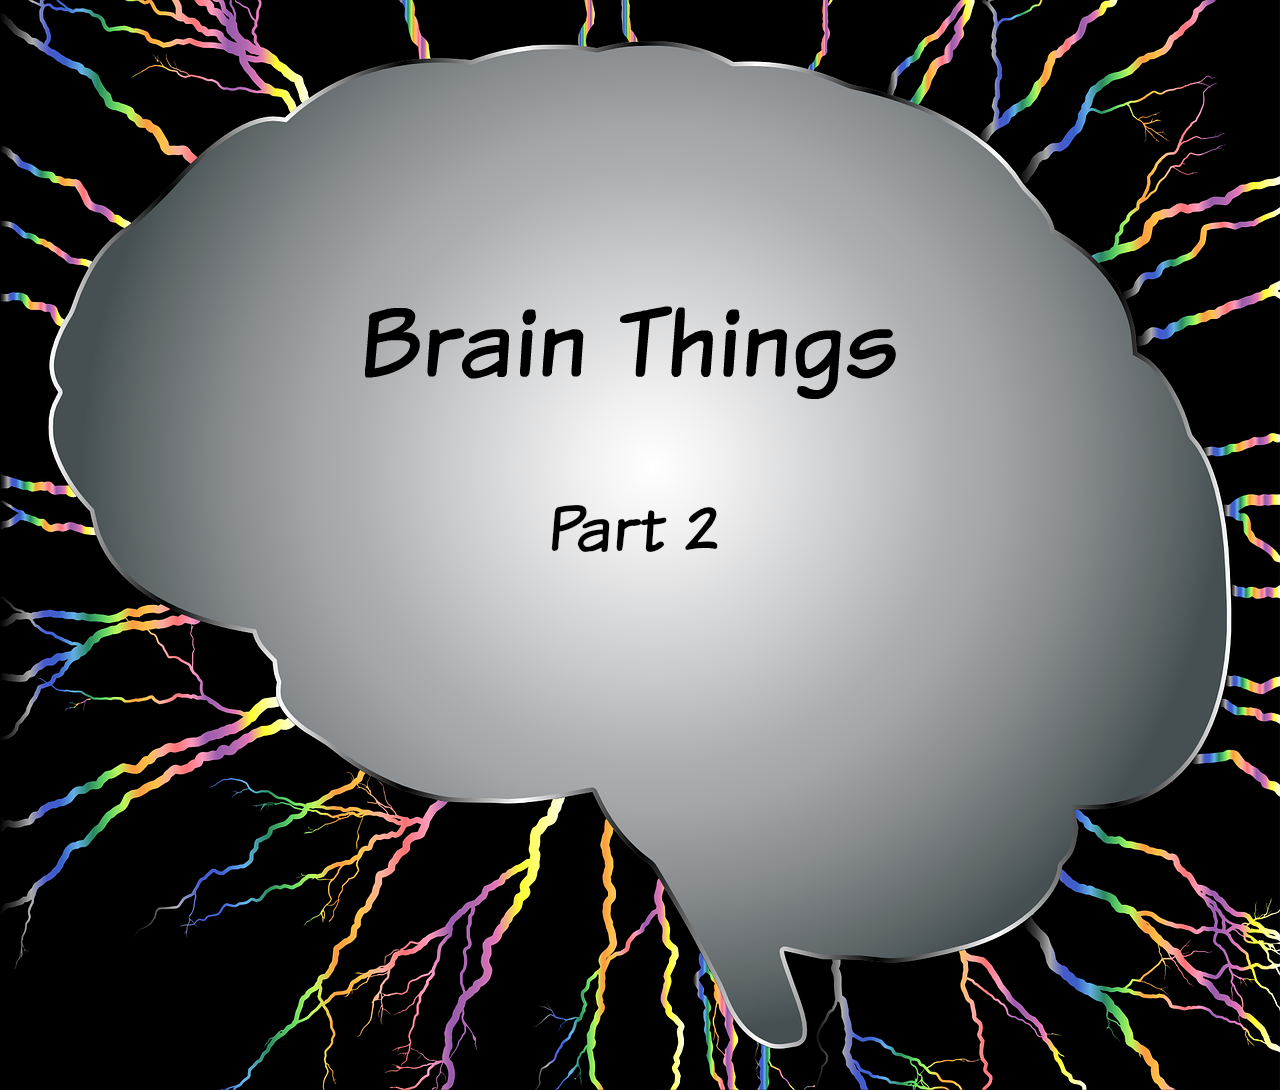 Brain Things Part 2 (Chiari Malformation)